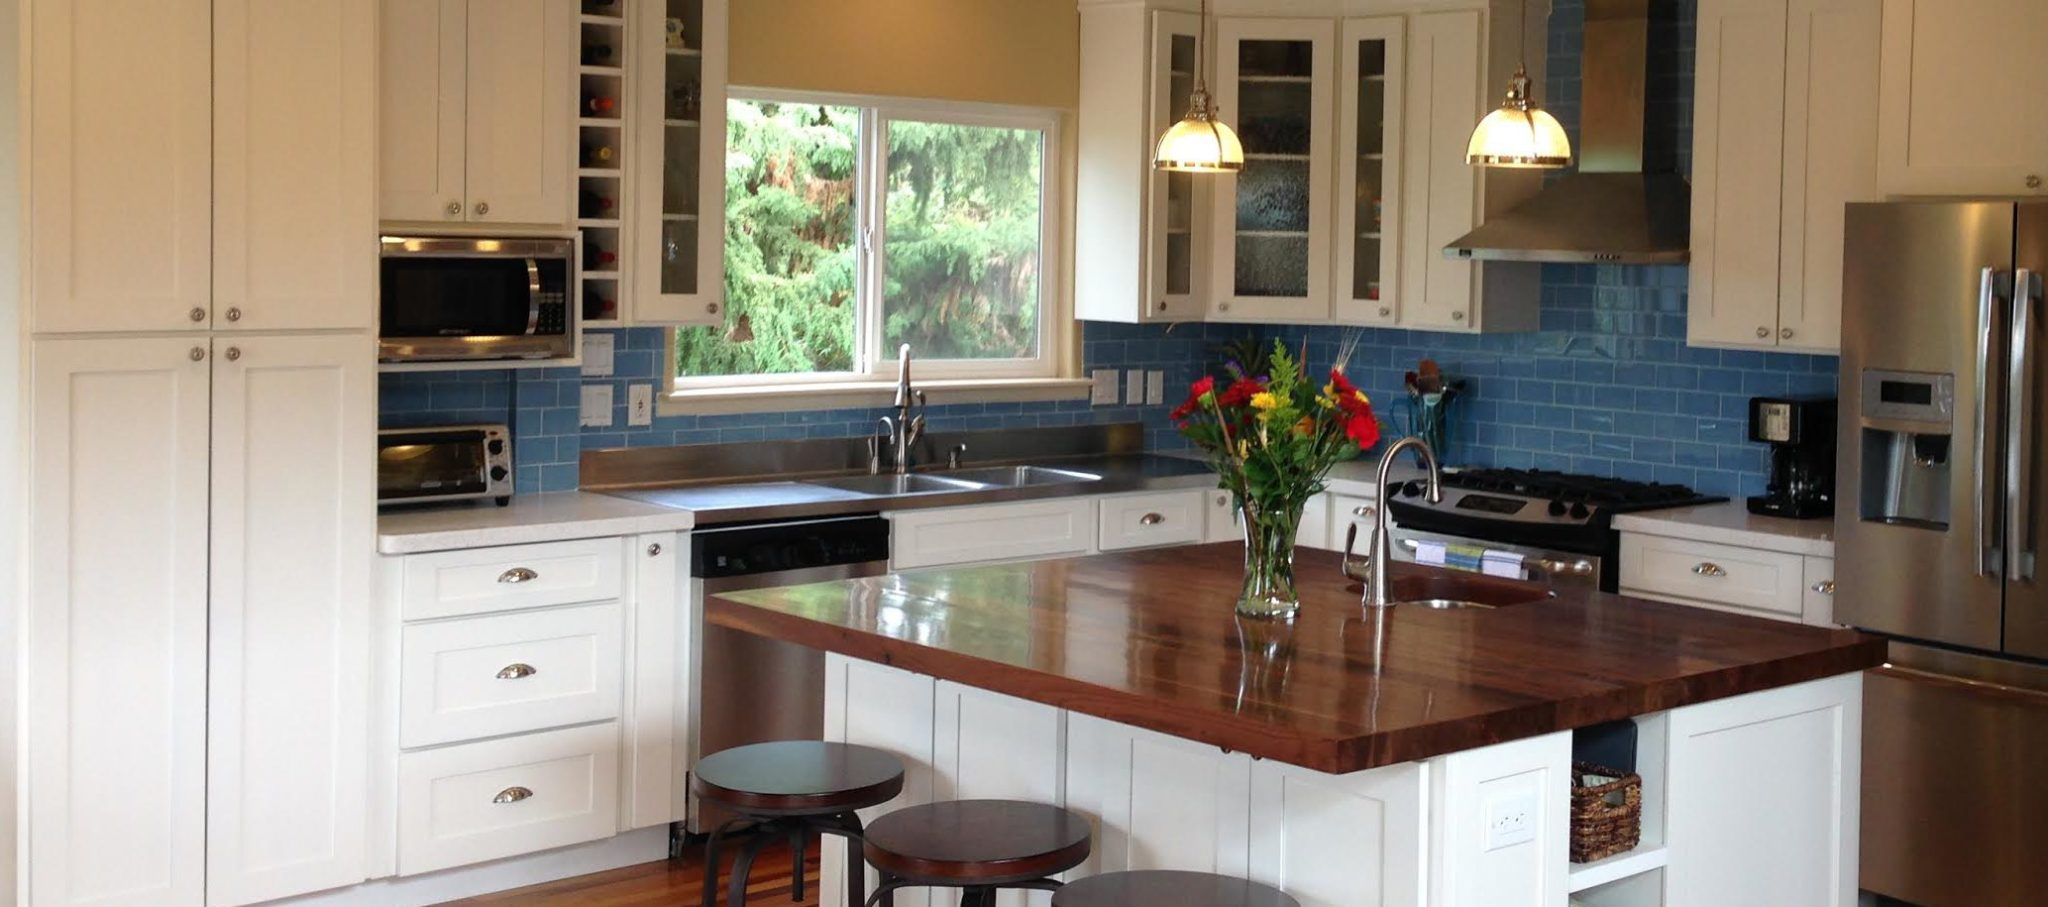 Best Wood For Butcher Block Counters: Custom Design Wood Counters